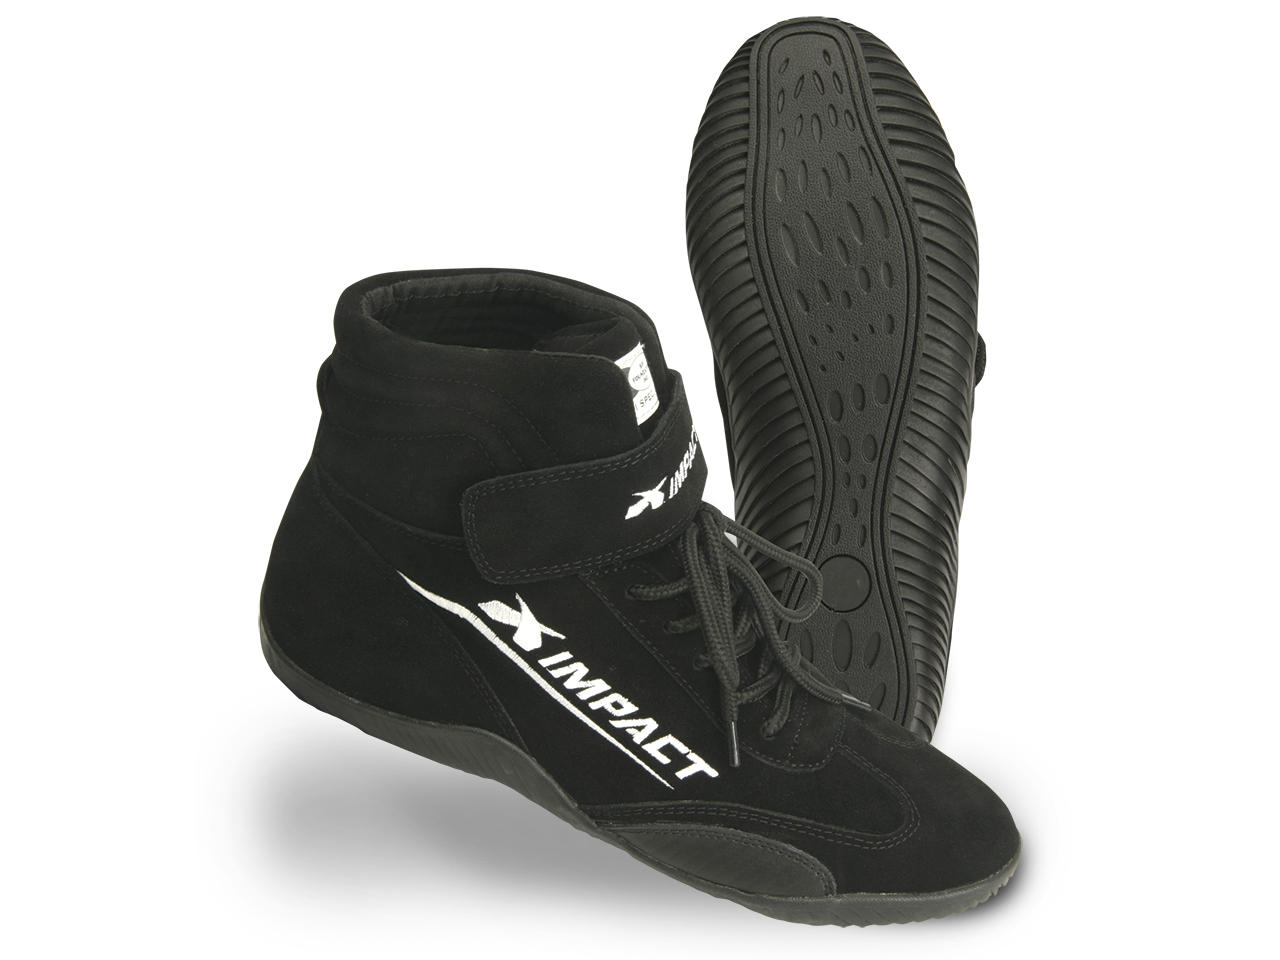 Impact Axis High Top Shoe - Size 7